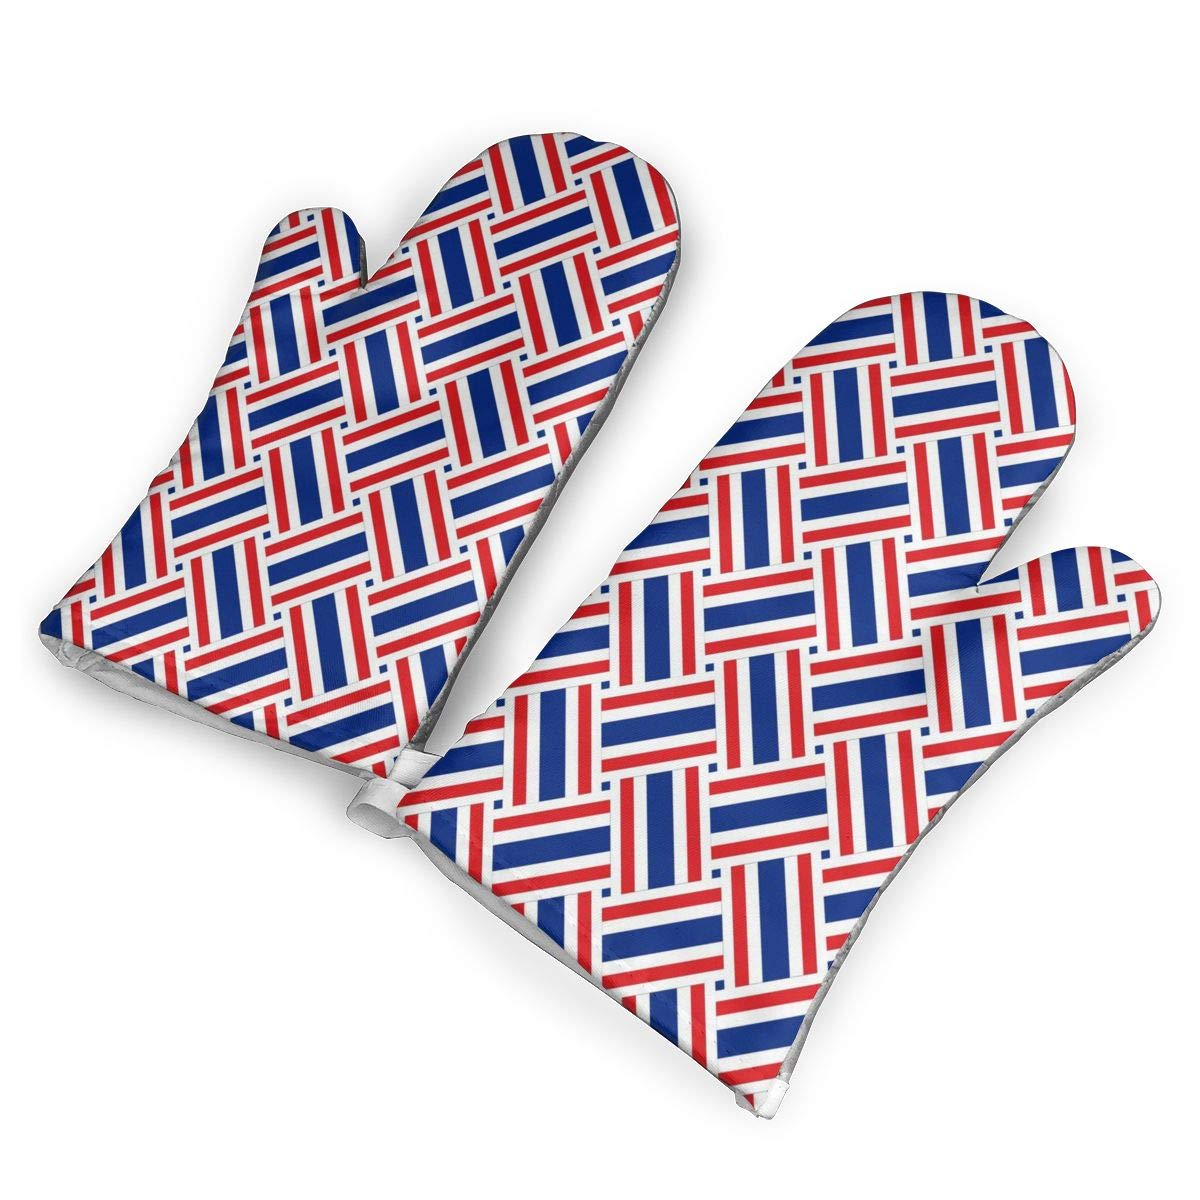 Oven Mitts 5.5 X 12 In Thailand Flag Weave Non-Slip Kitchen Oven Gloves Heat Resistant Washable Cotton Lining by KIXYOUHUU